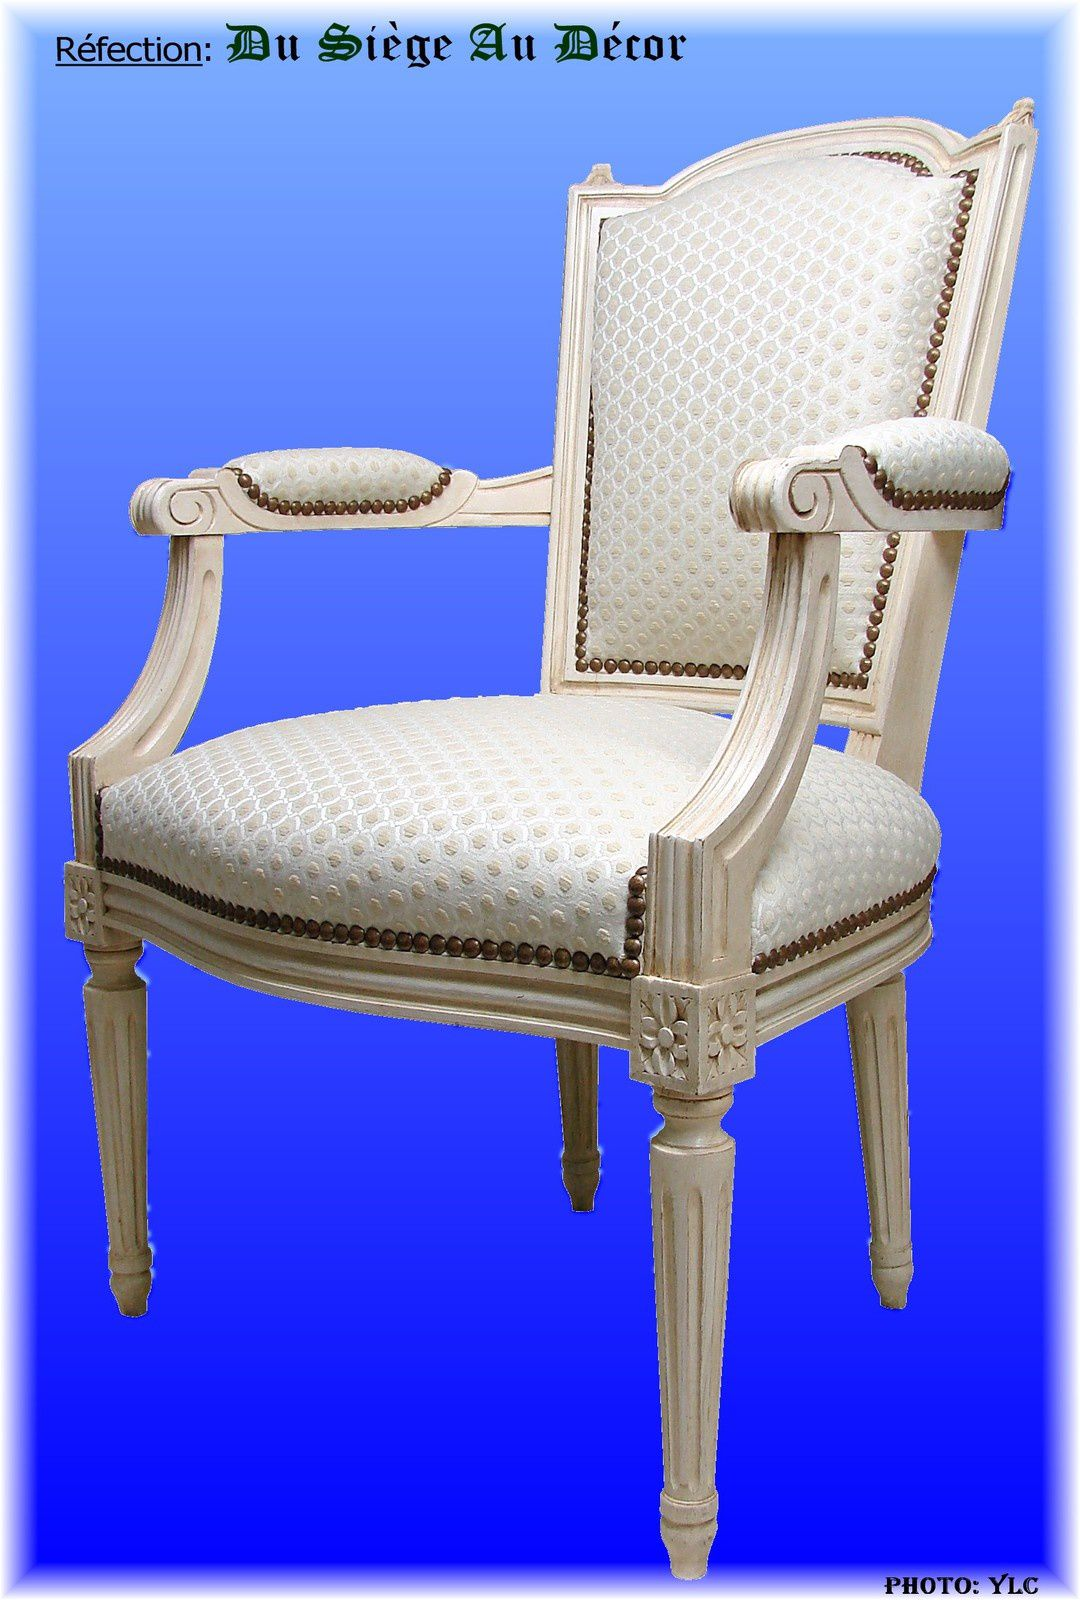 fauteuil style louis xvi du si ge au d cor tapissier d. Black Bedroom Furniture Sets. Home Design Ideas